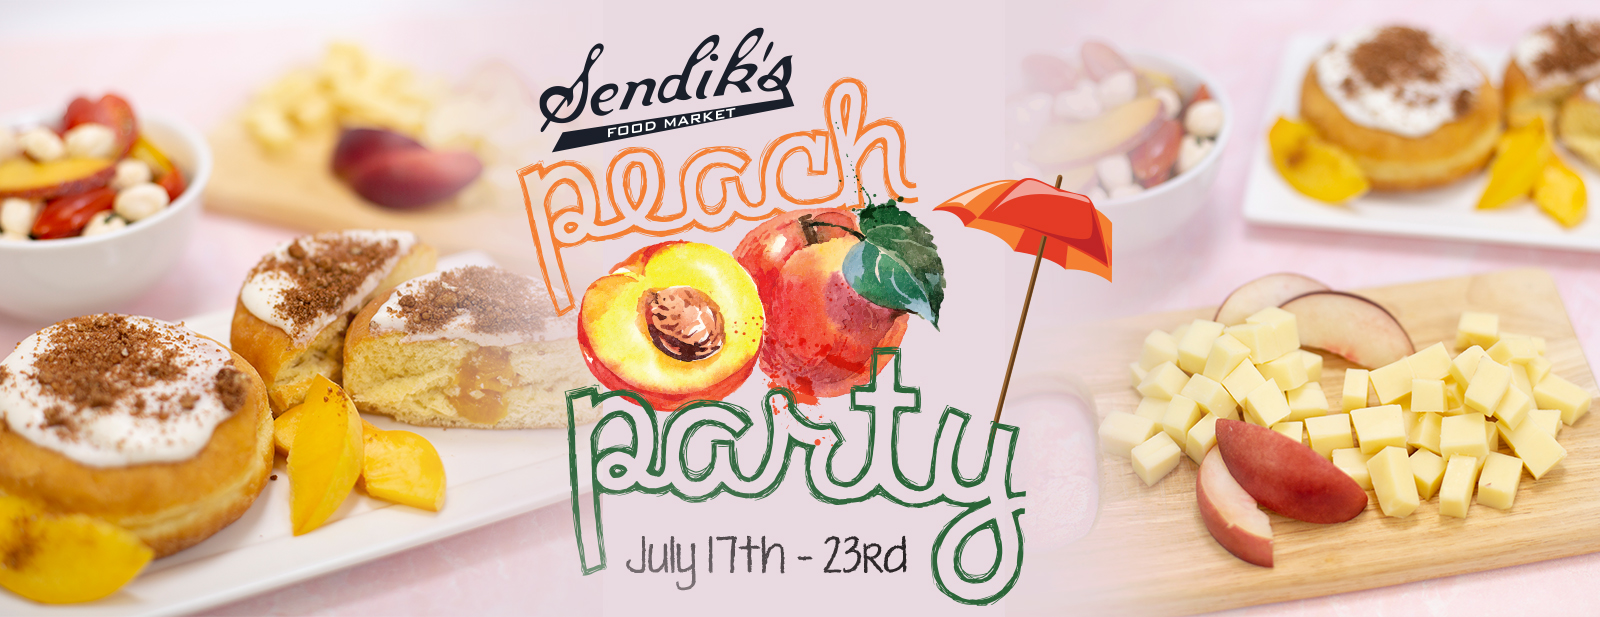 Peach Party July 17 - July 23